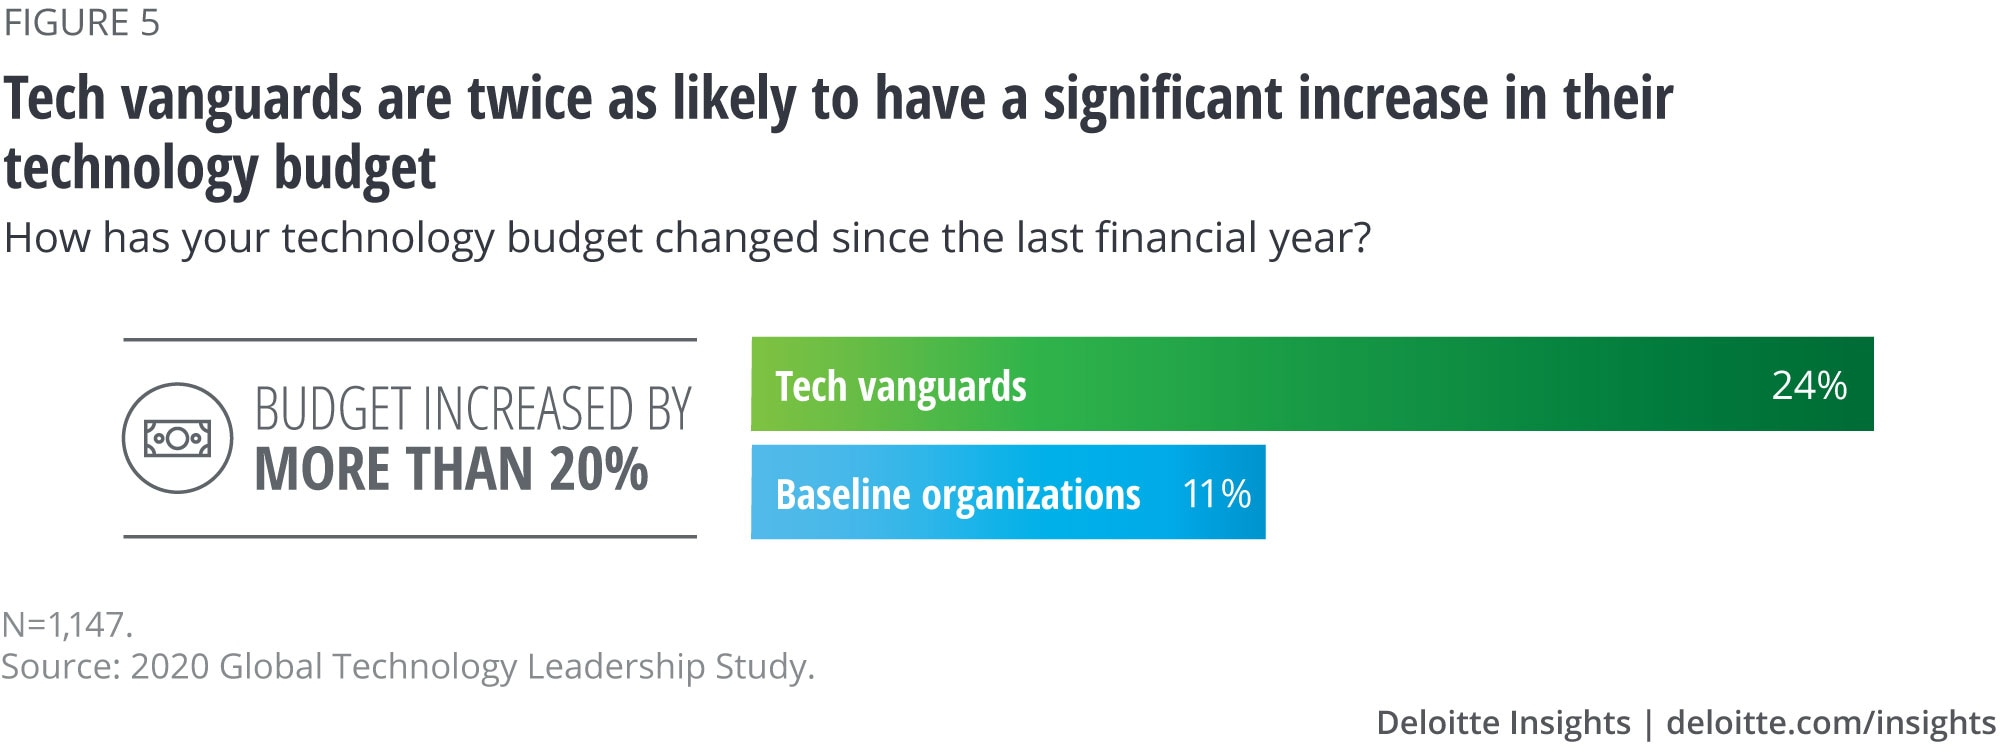 Tech vanguards are twice as likely to have a significant increase in their technology budget